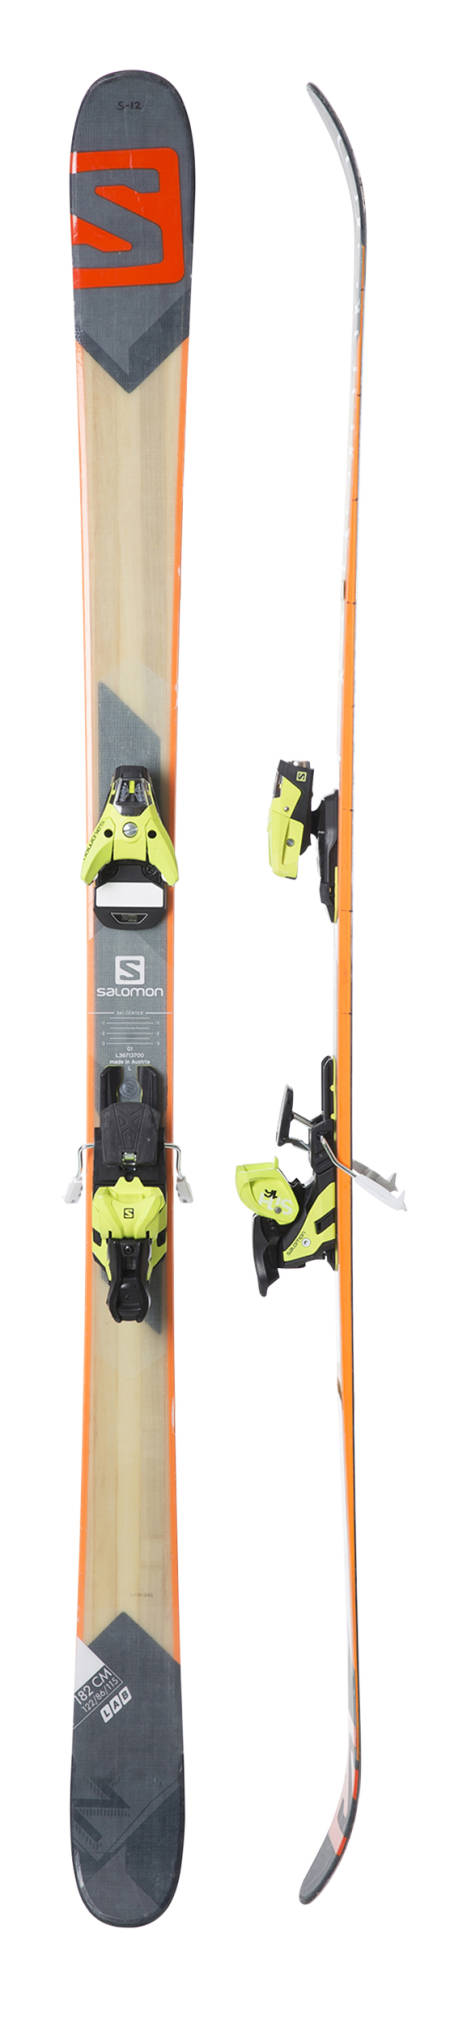 Salomon NFX